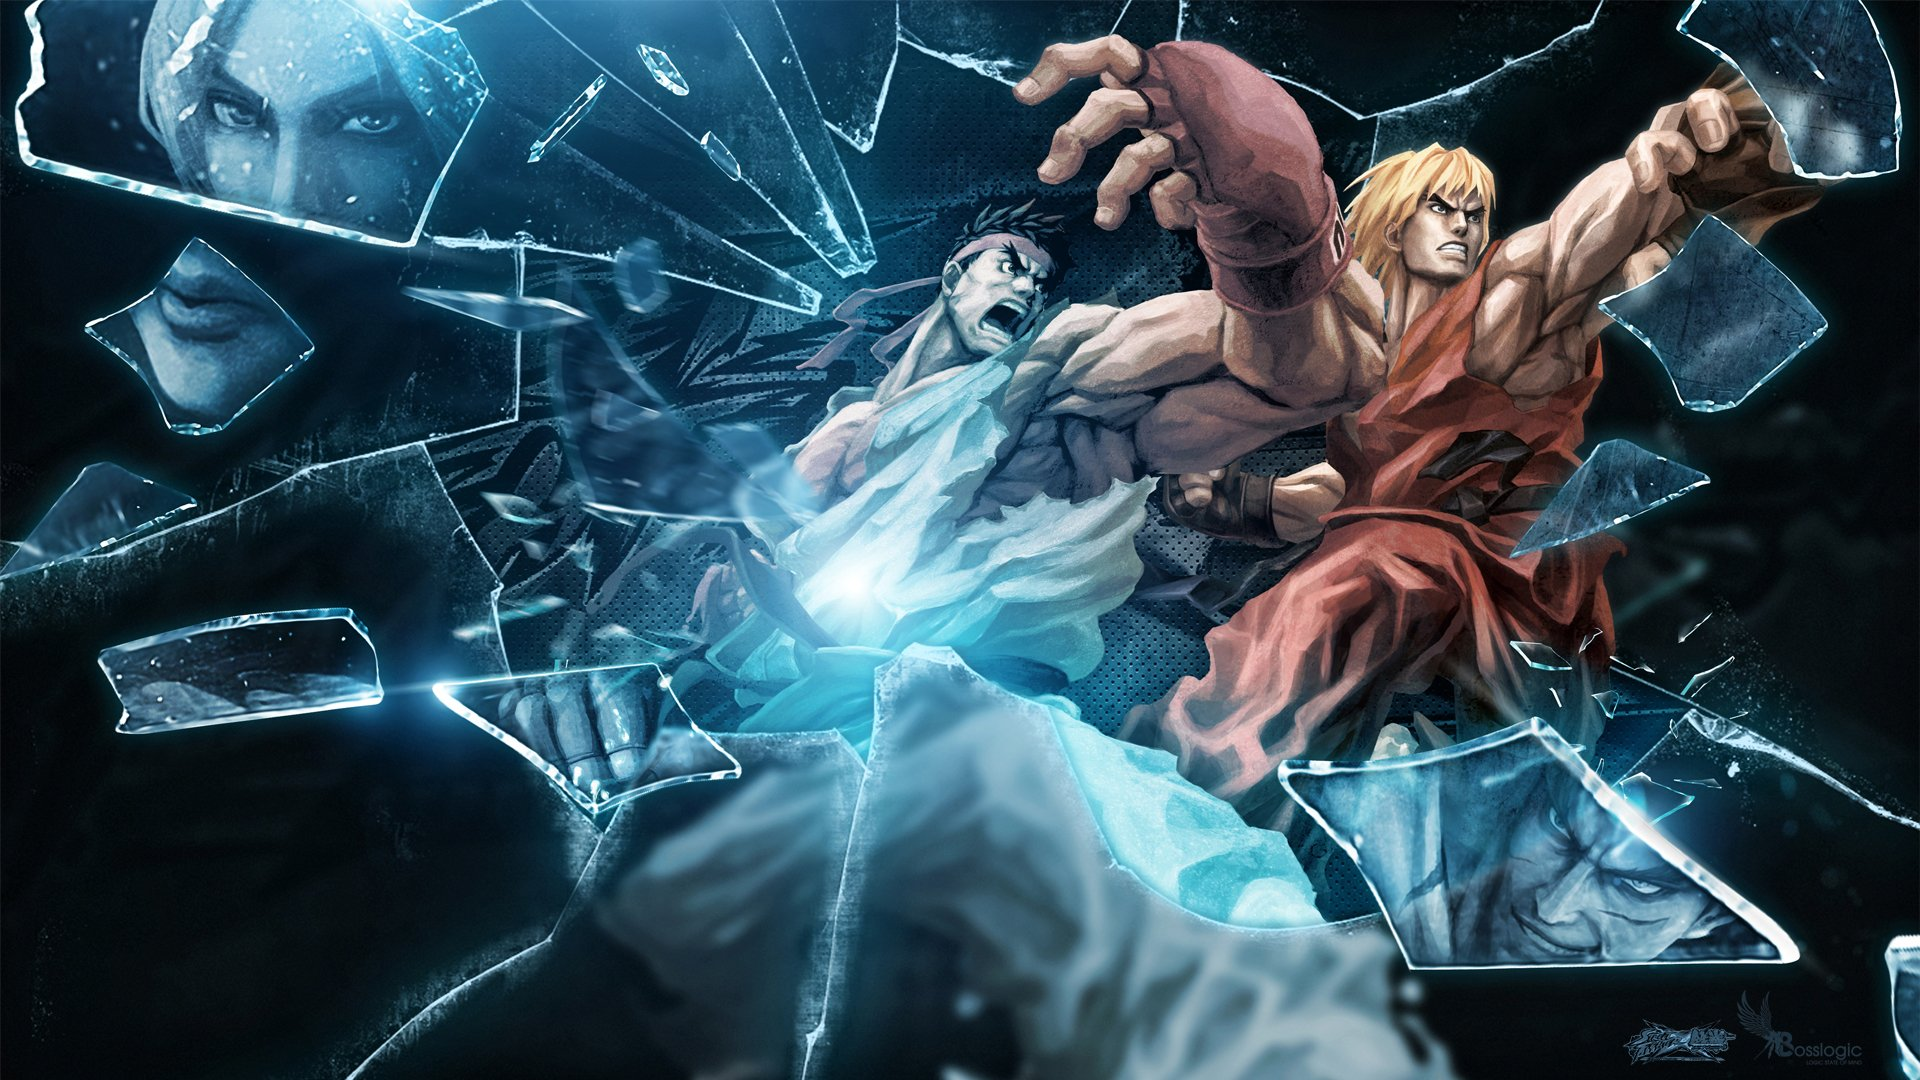 Street Fighter X Tekken Boss Logic wallpaper 7 1920x1080